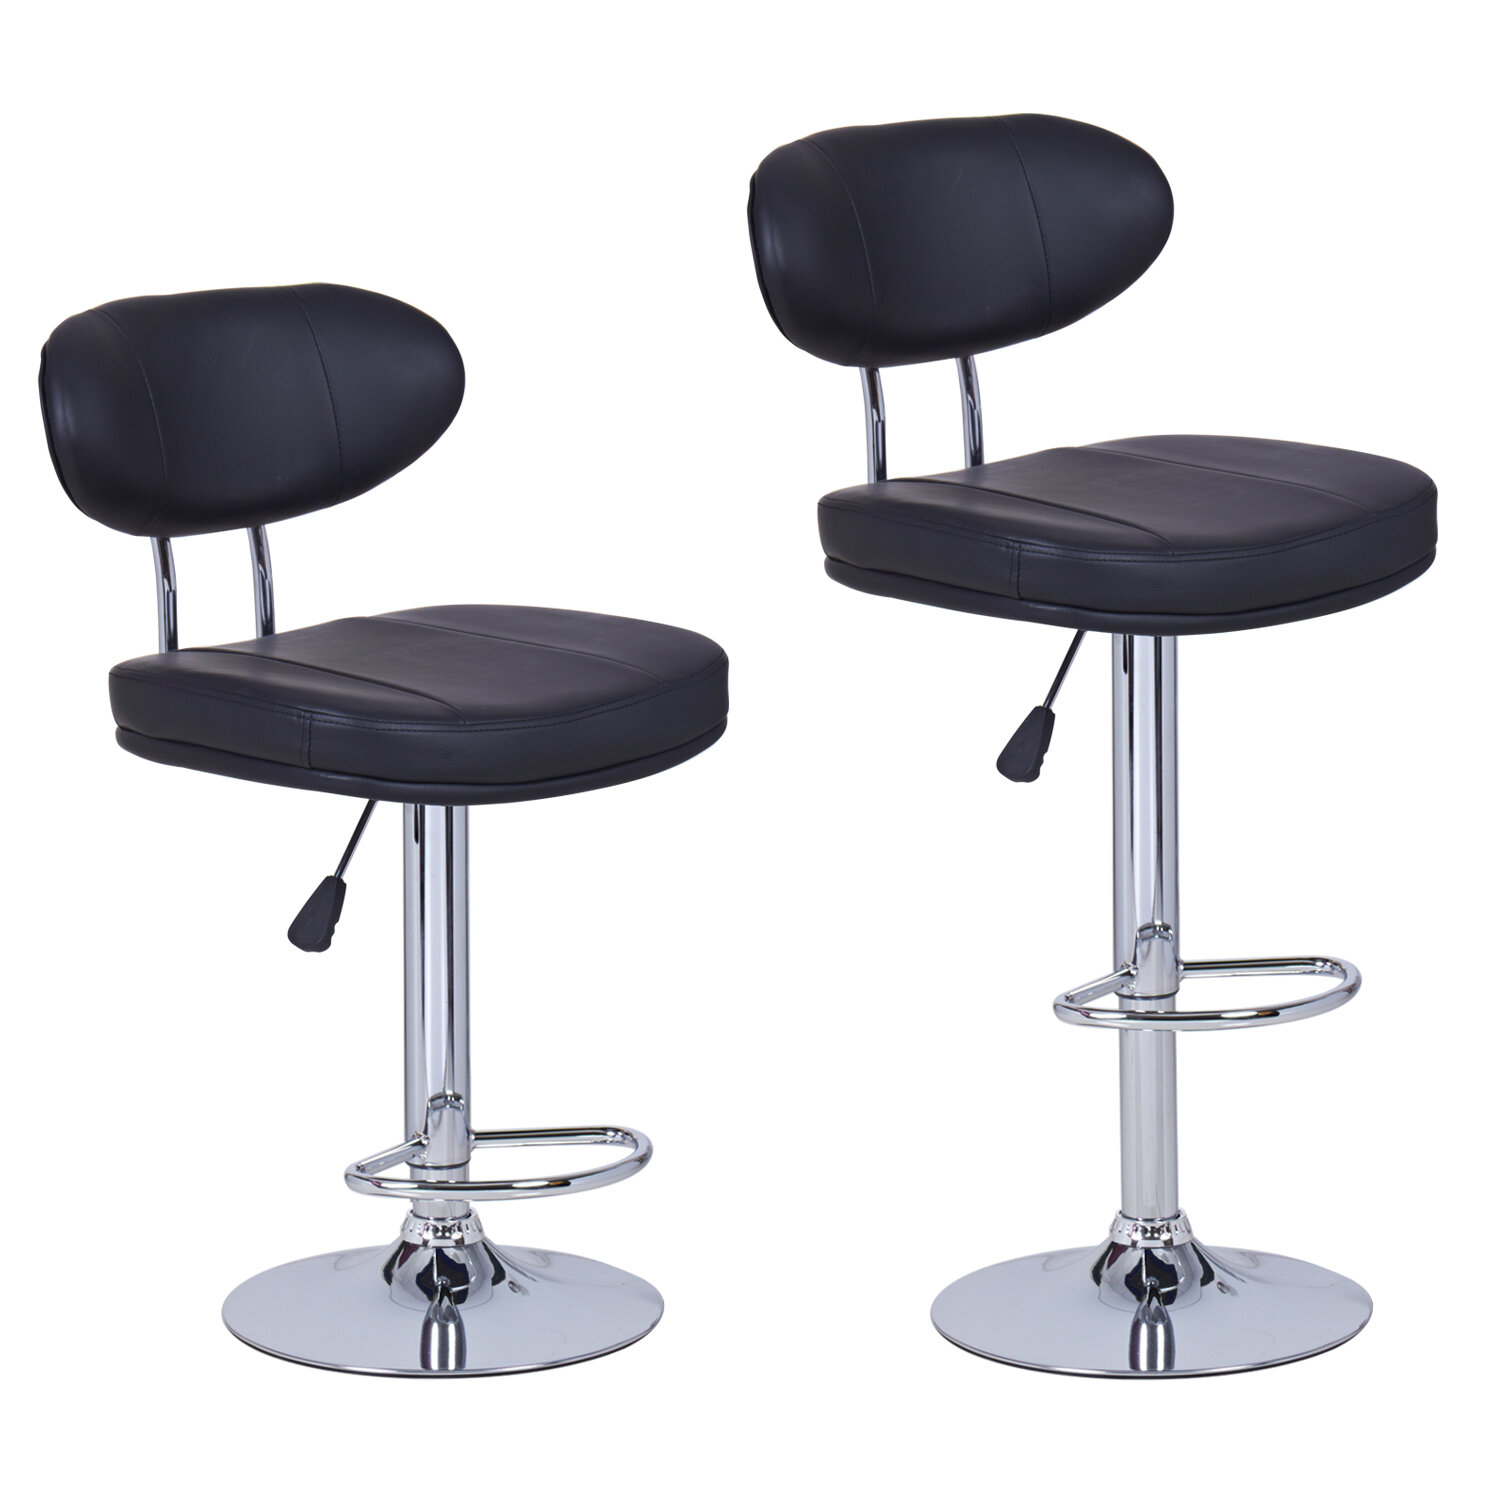 Brilliant Adjustable Height Swivel Bar Stool Gmtry Best Dining Table And Chair Ideas Images Gmtryco